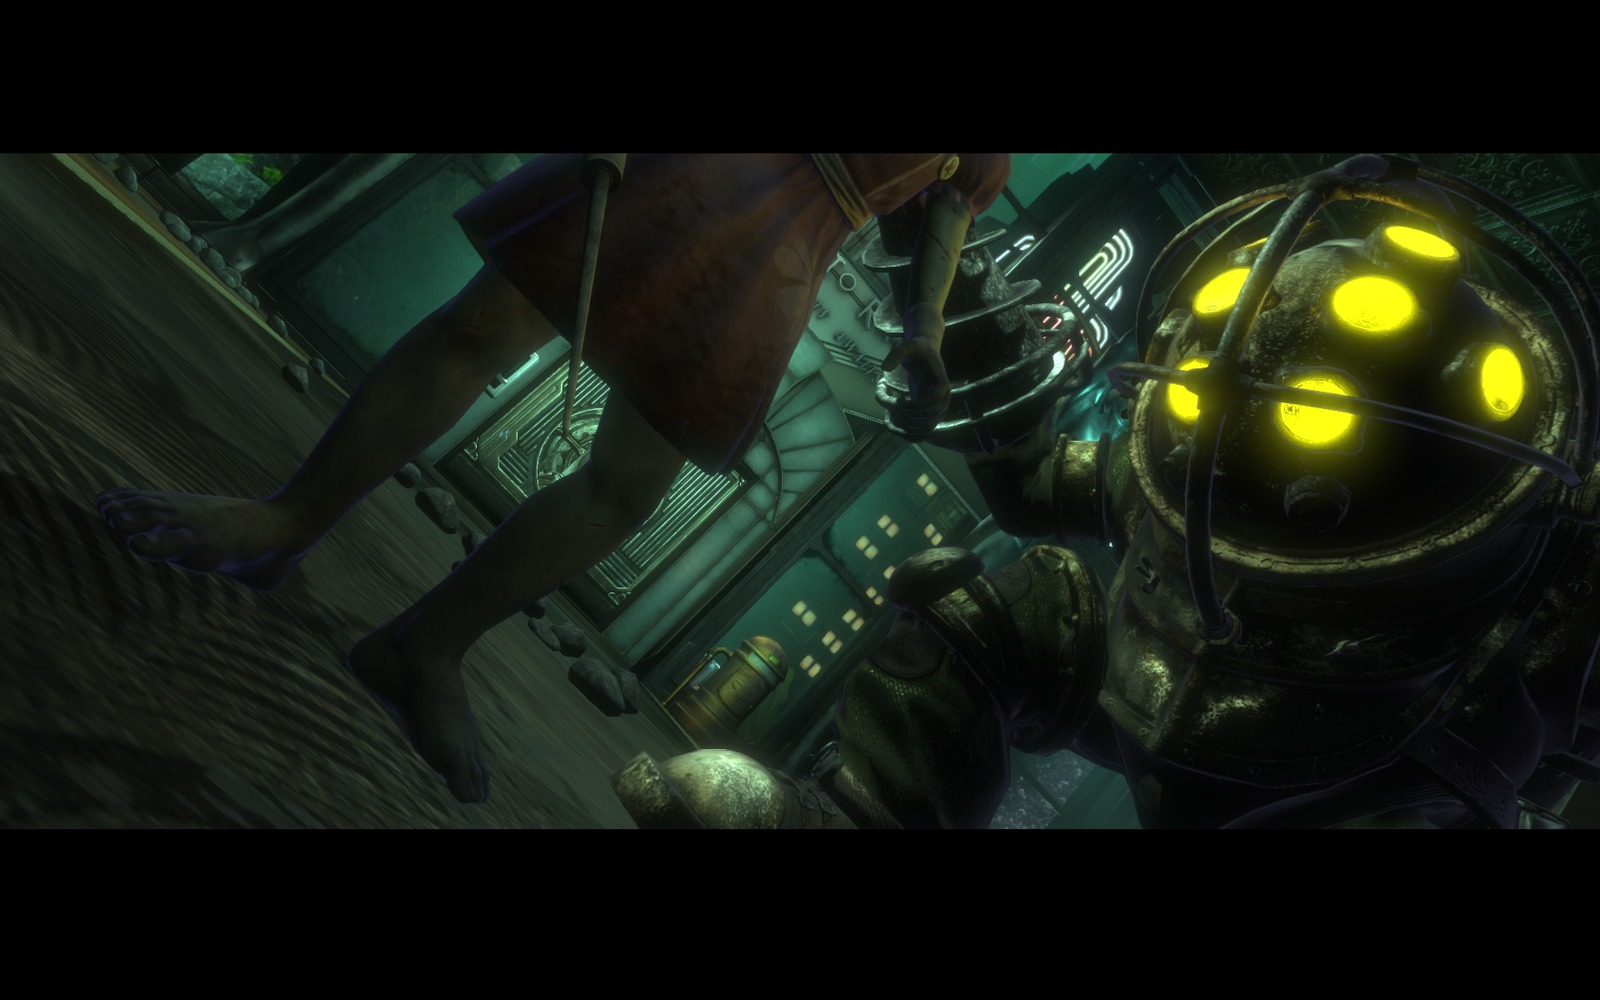 BioShock: The Collection for PS4 image